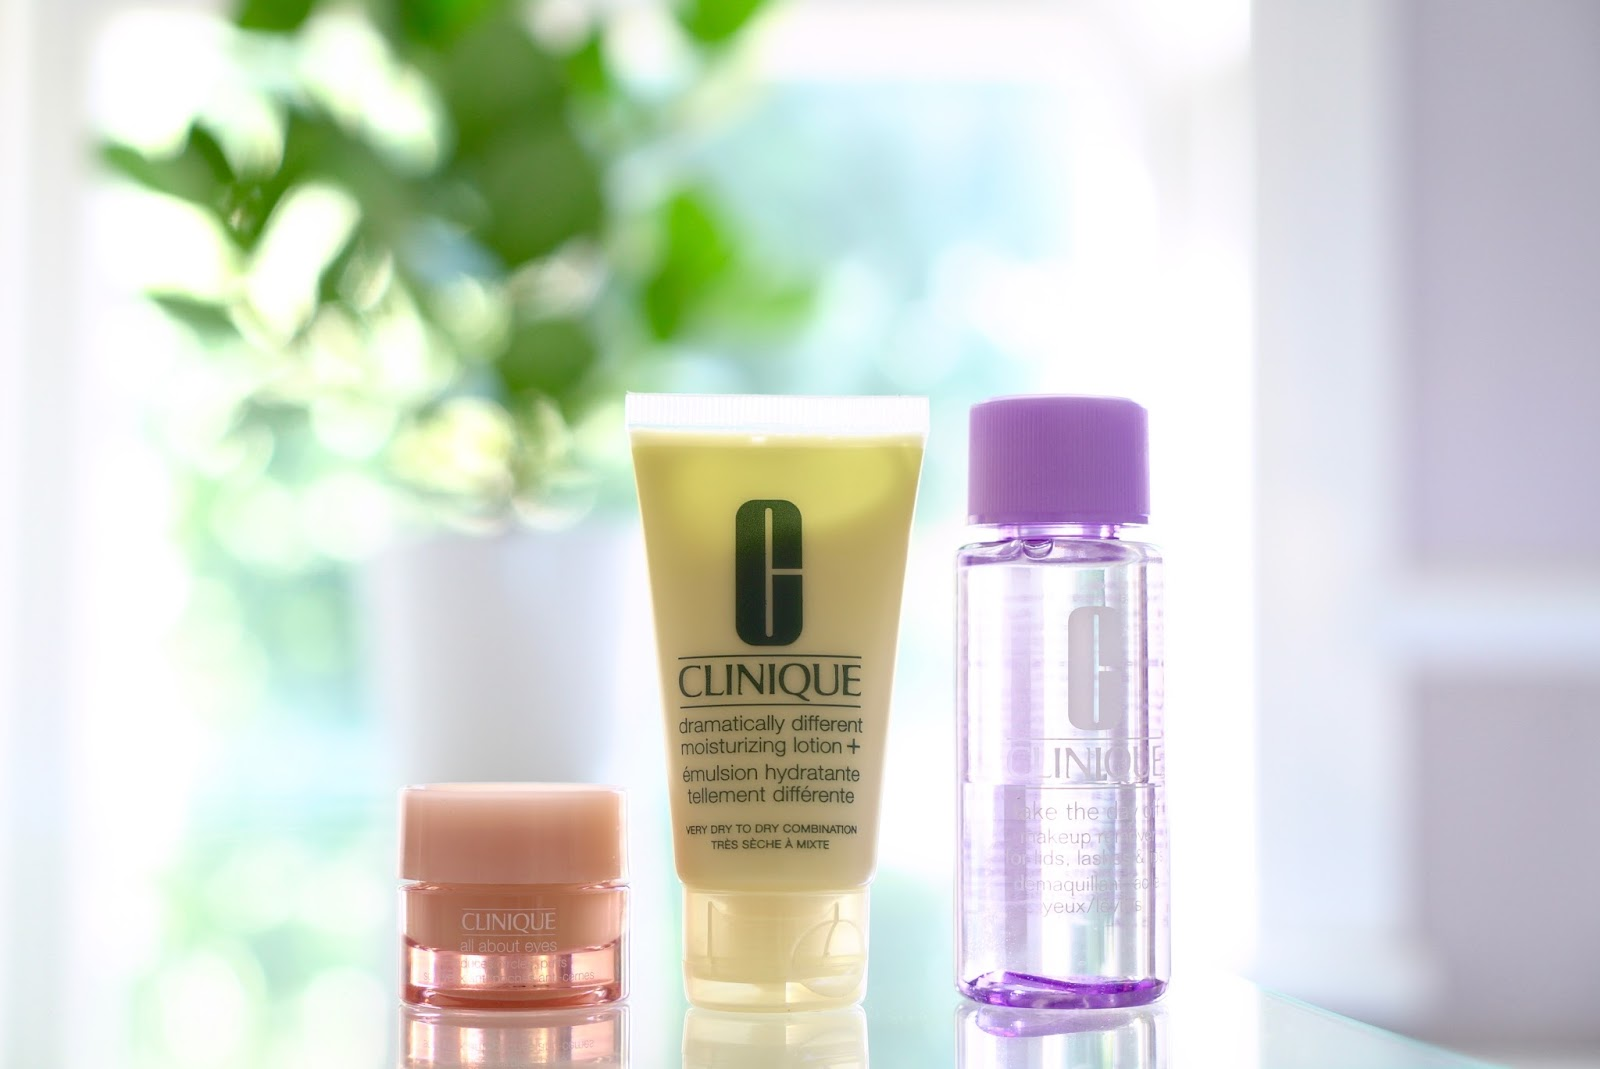 CLINIQUE BONUS TIME, 6 BEAUTY PRODUCTS FREE WITH PURCHASE